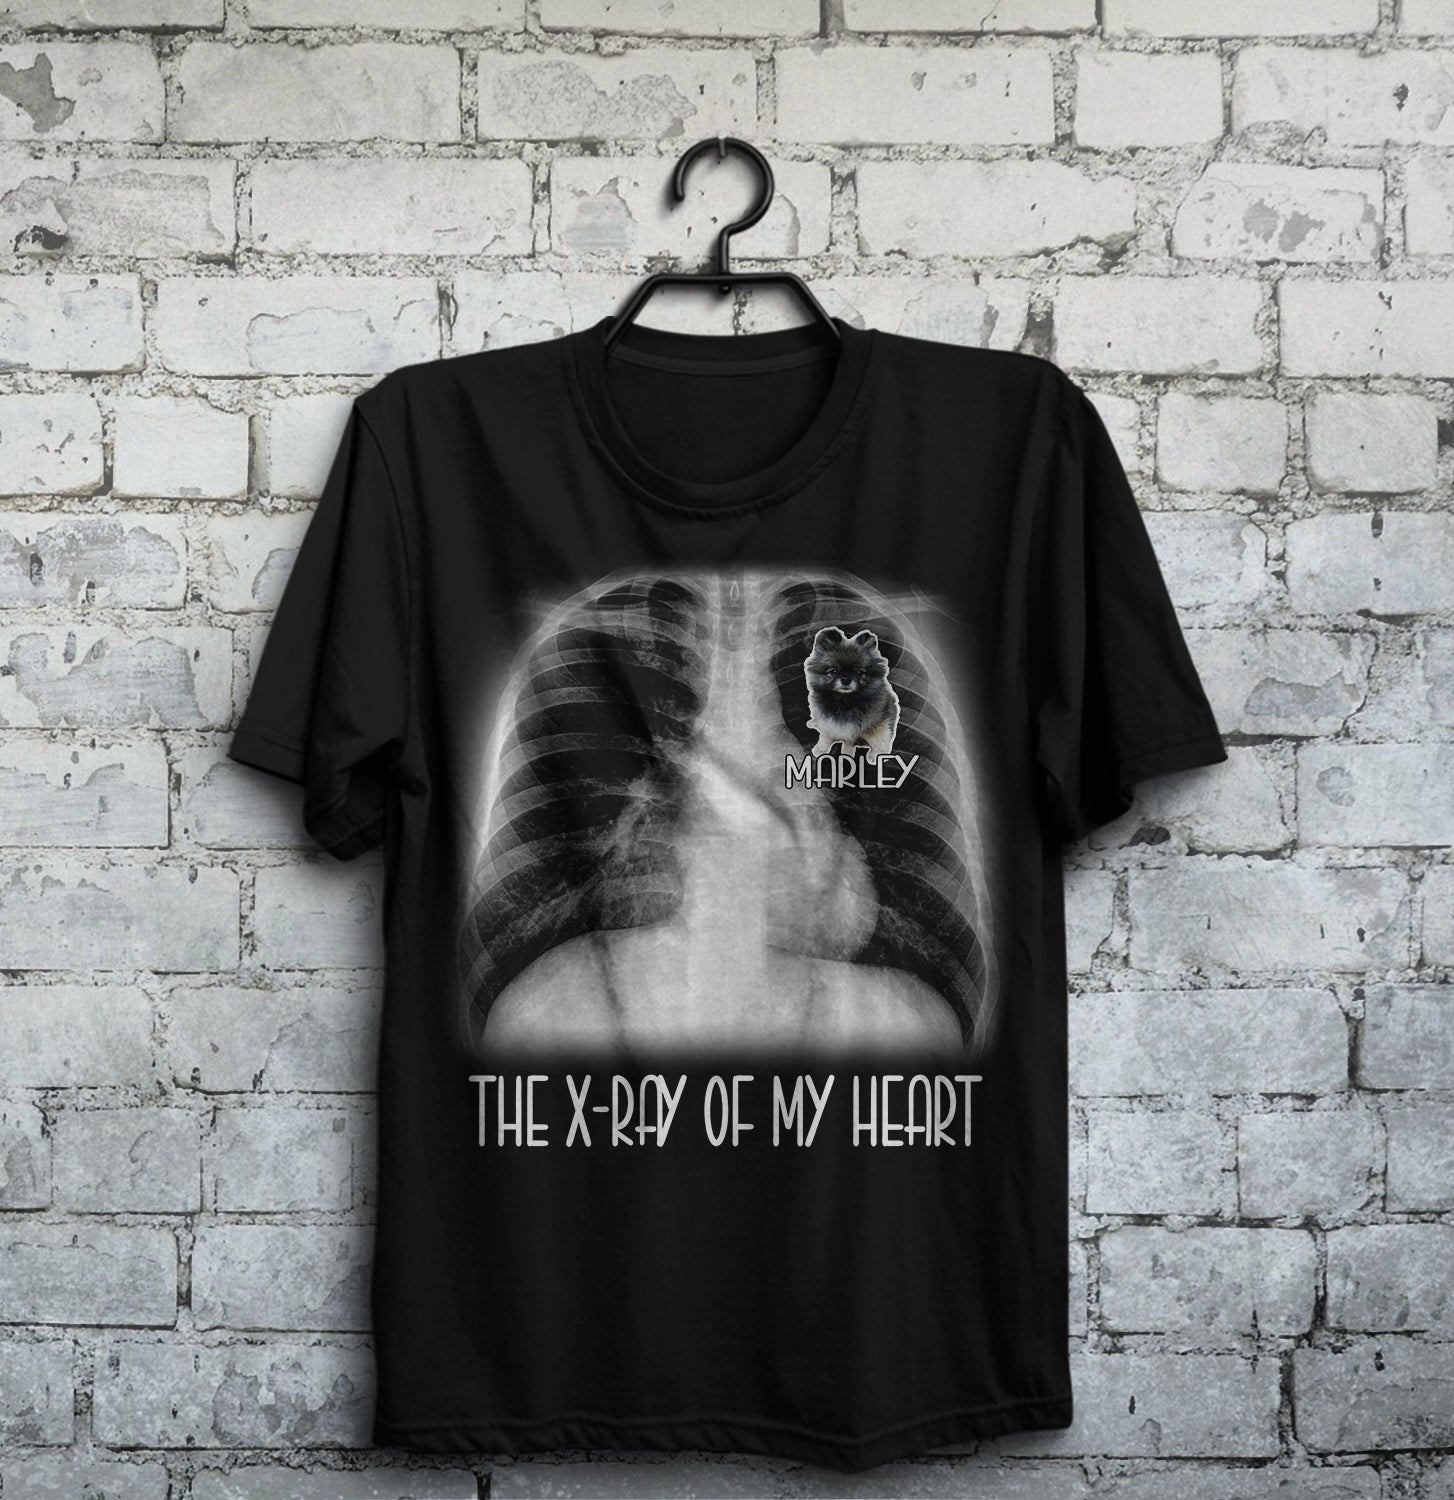 Personalized Dog Shirt - The X-ray of my heart Marley customer